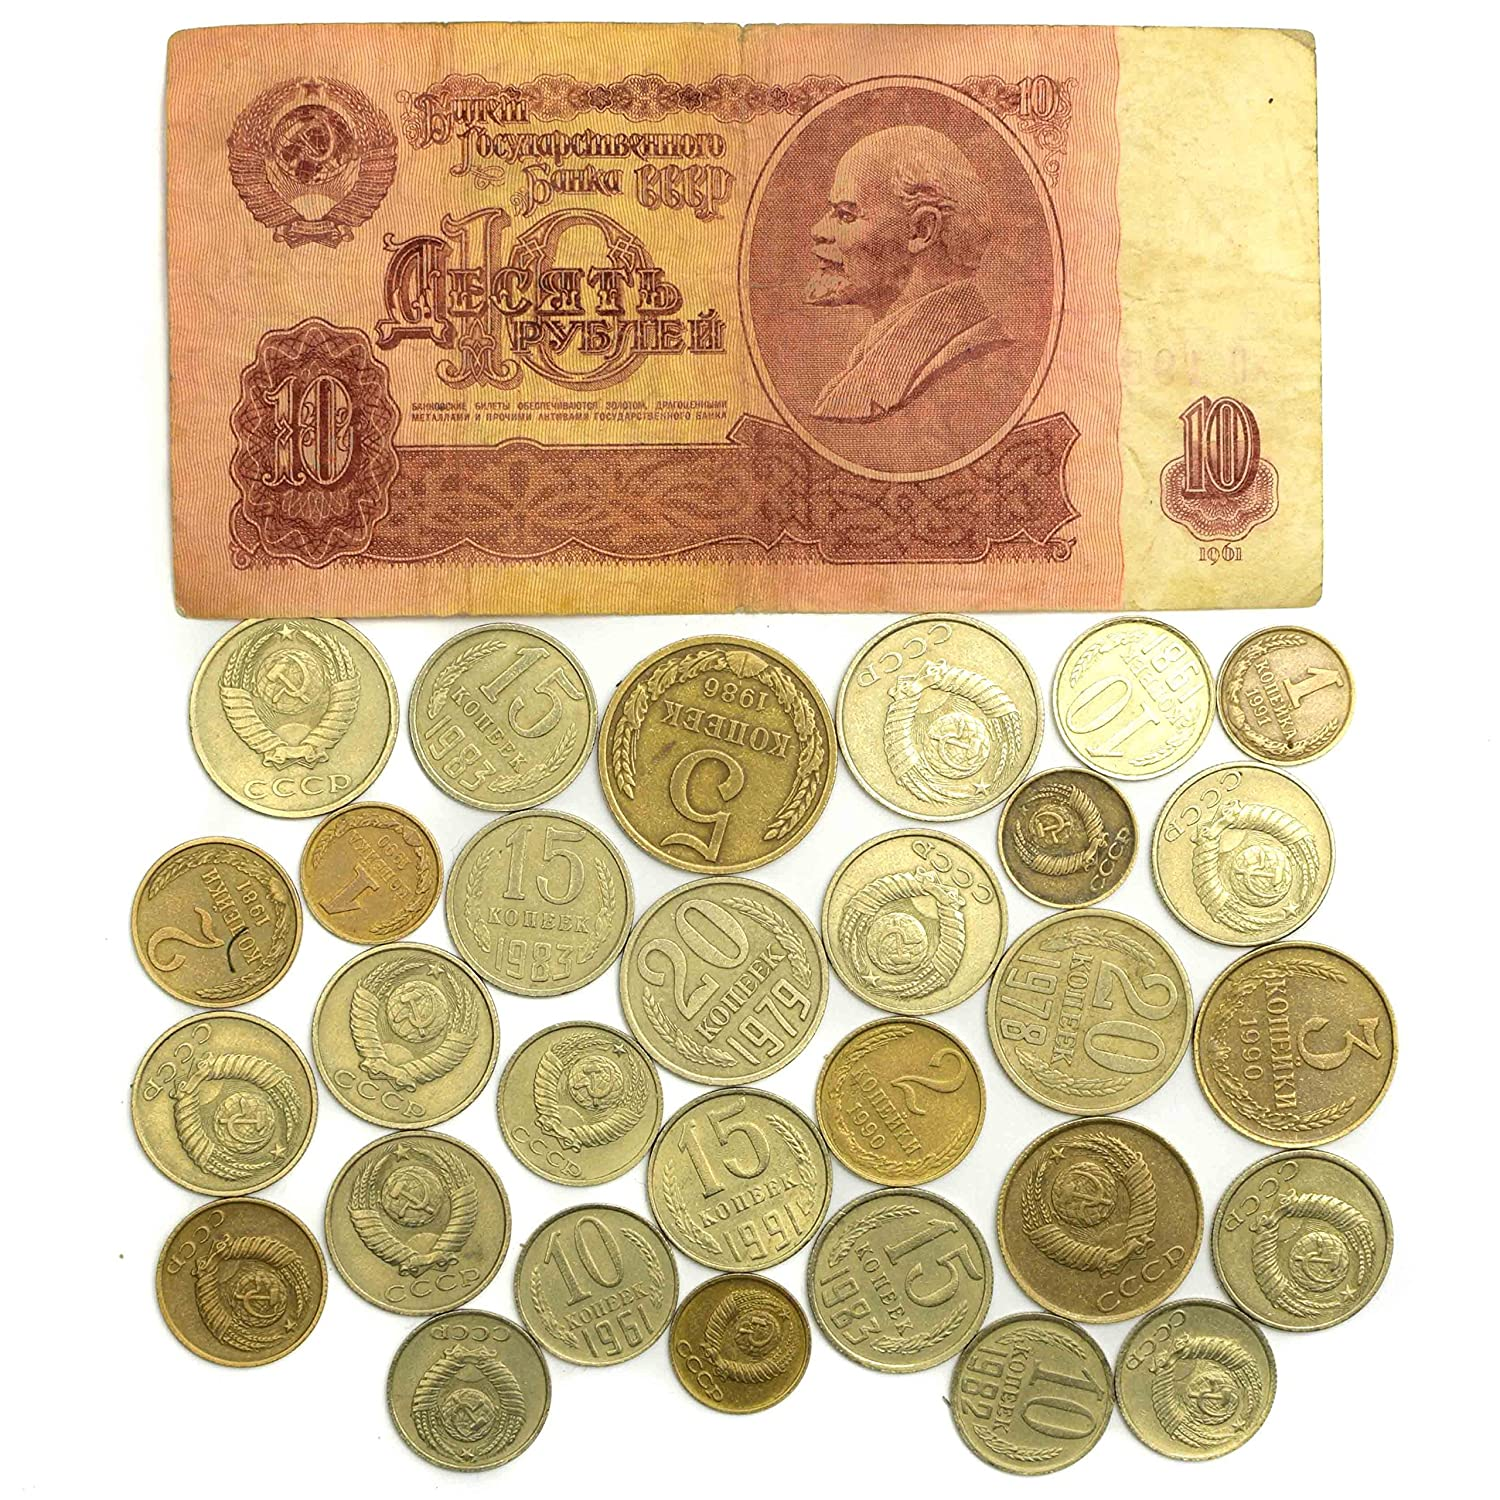 Coin Collection For Sale >> 1961 Ussr Ruble 30 Kopeks Russian Cccp Cold War Soviet Money Collection Lot 10 Rubles Banknote